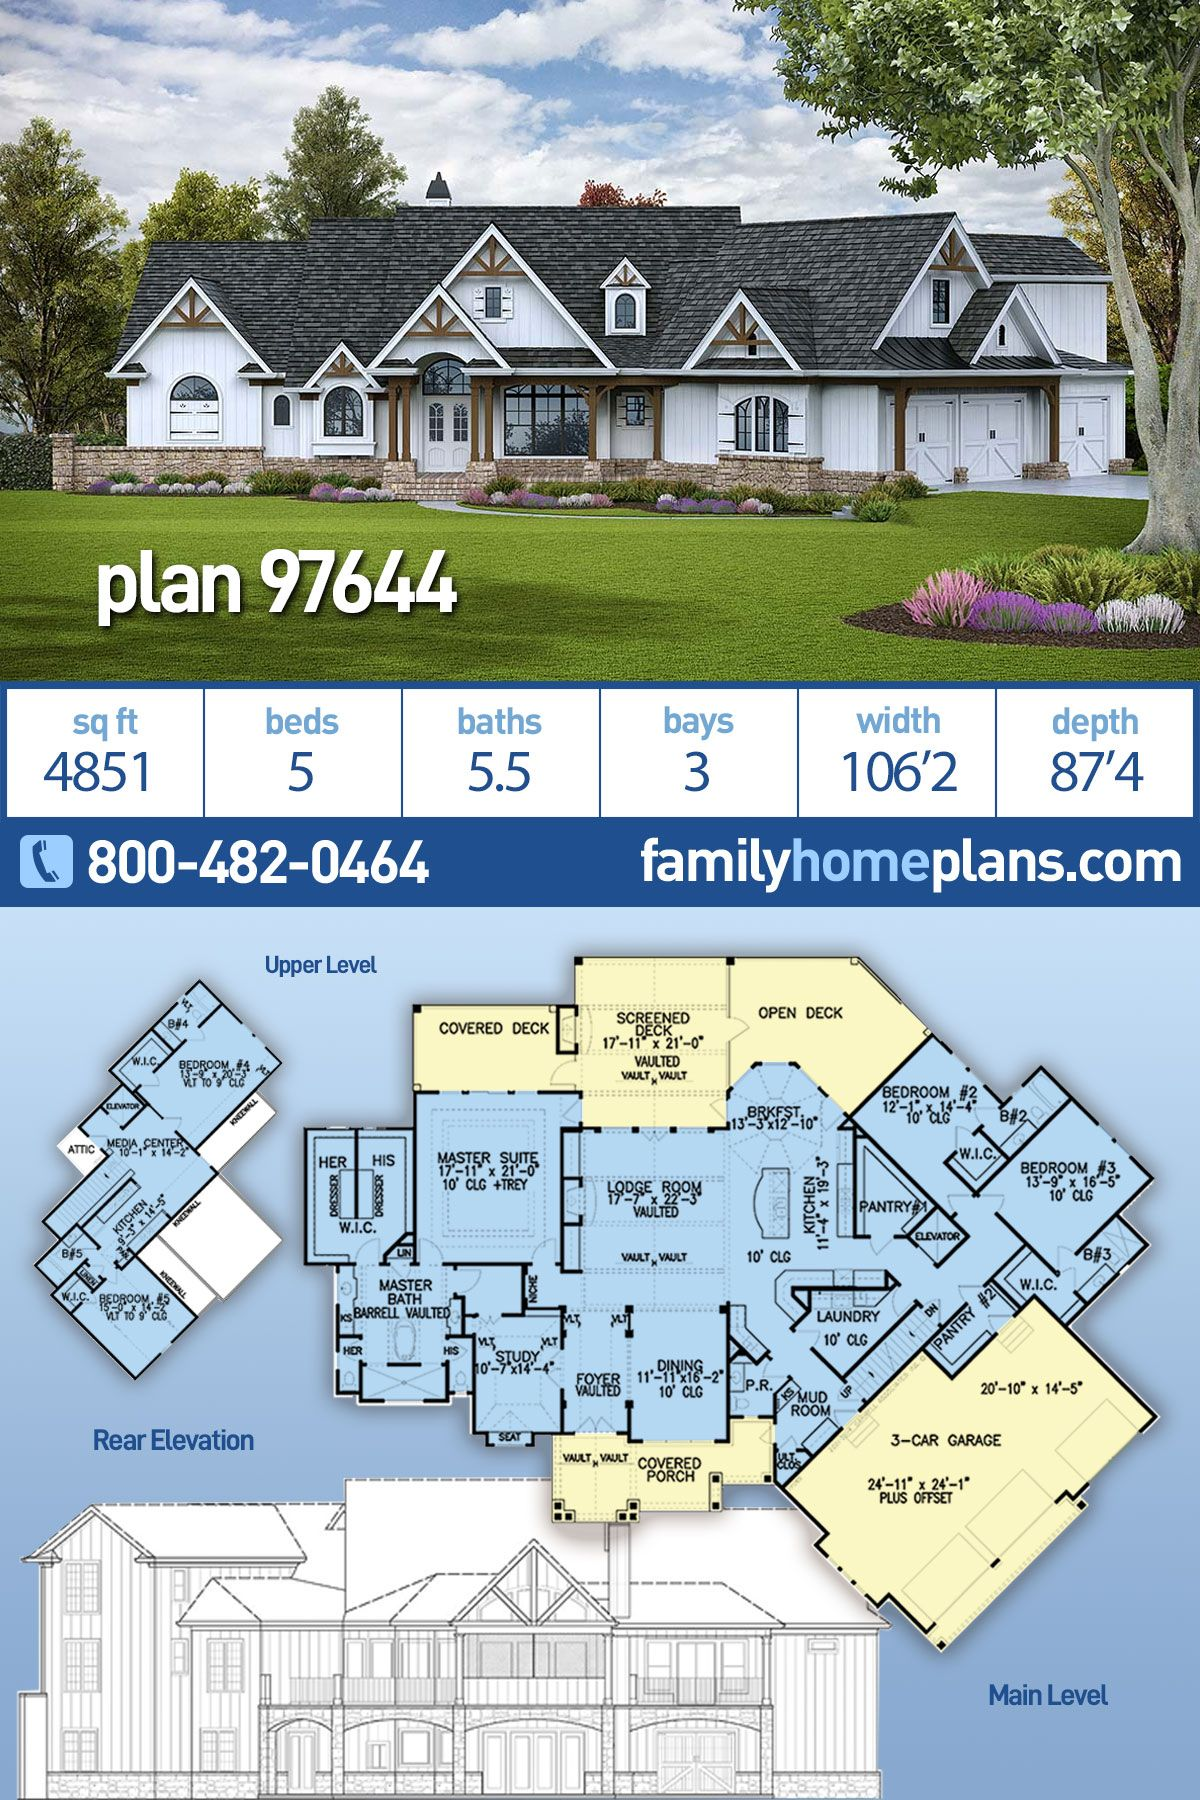 5 Bedroom House Plan With Luxury Outdoor Living Space Family Home Plans Blog Country Style House Plans Family House Plans Craftsman House Plans